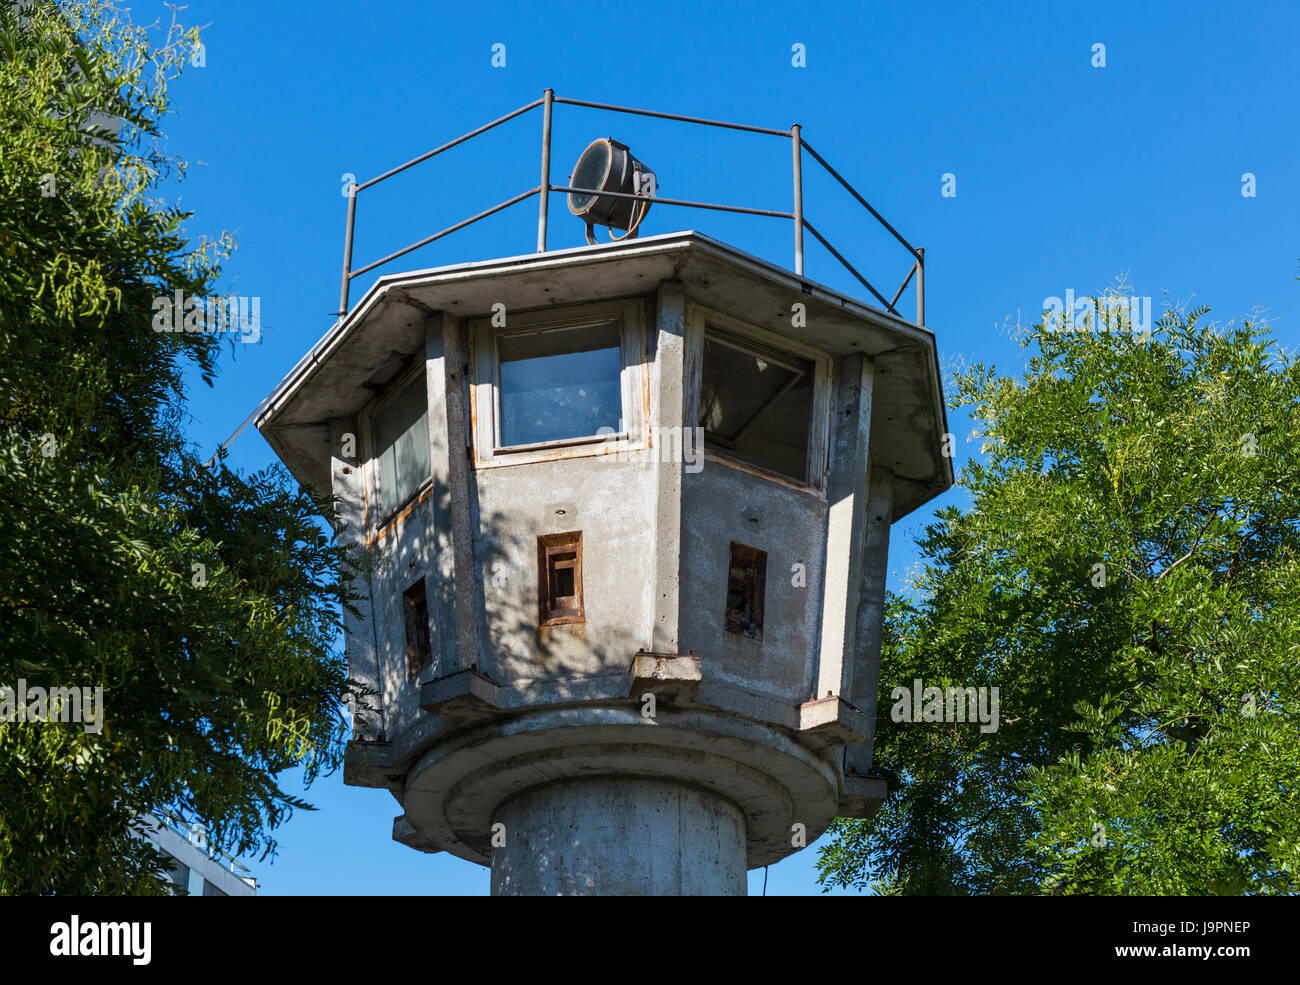 Old GDR Watchtower (DDR-Grenzwachturm), Erna-Berger-Strasse, Mitte, Berlin, Germany - Stock Image